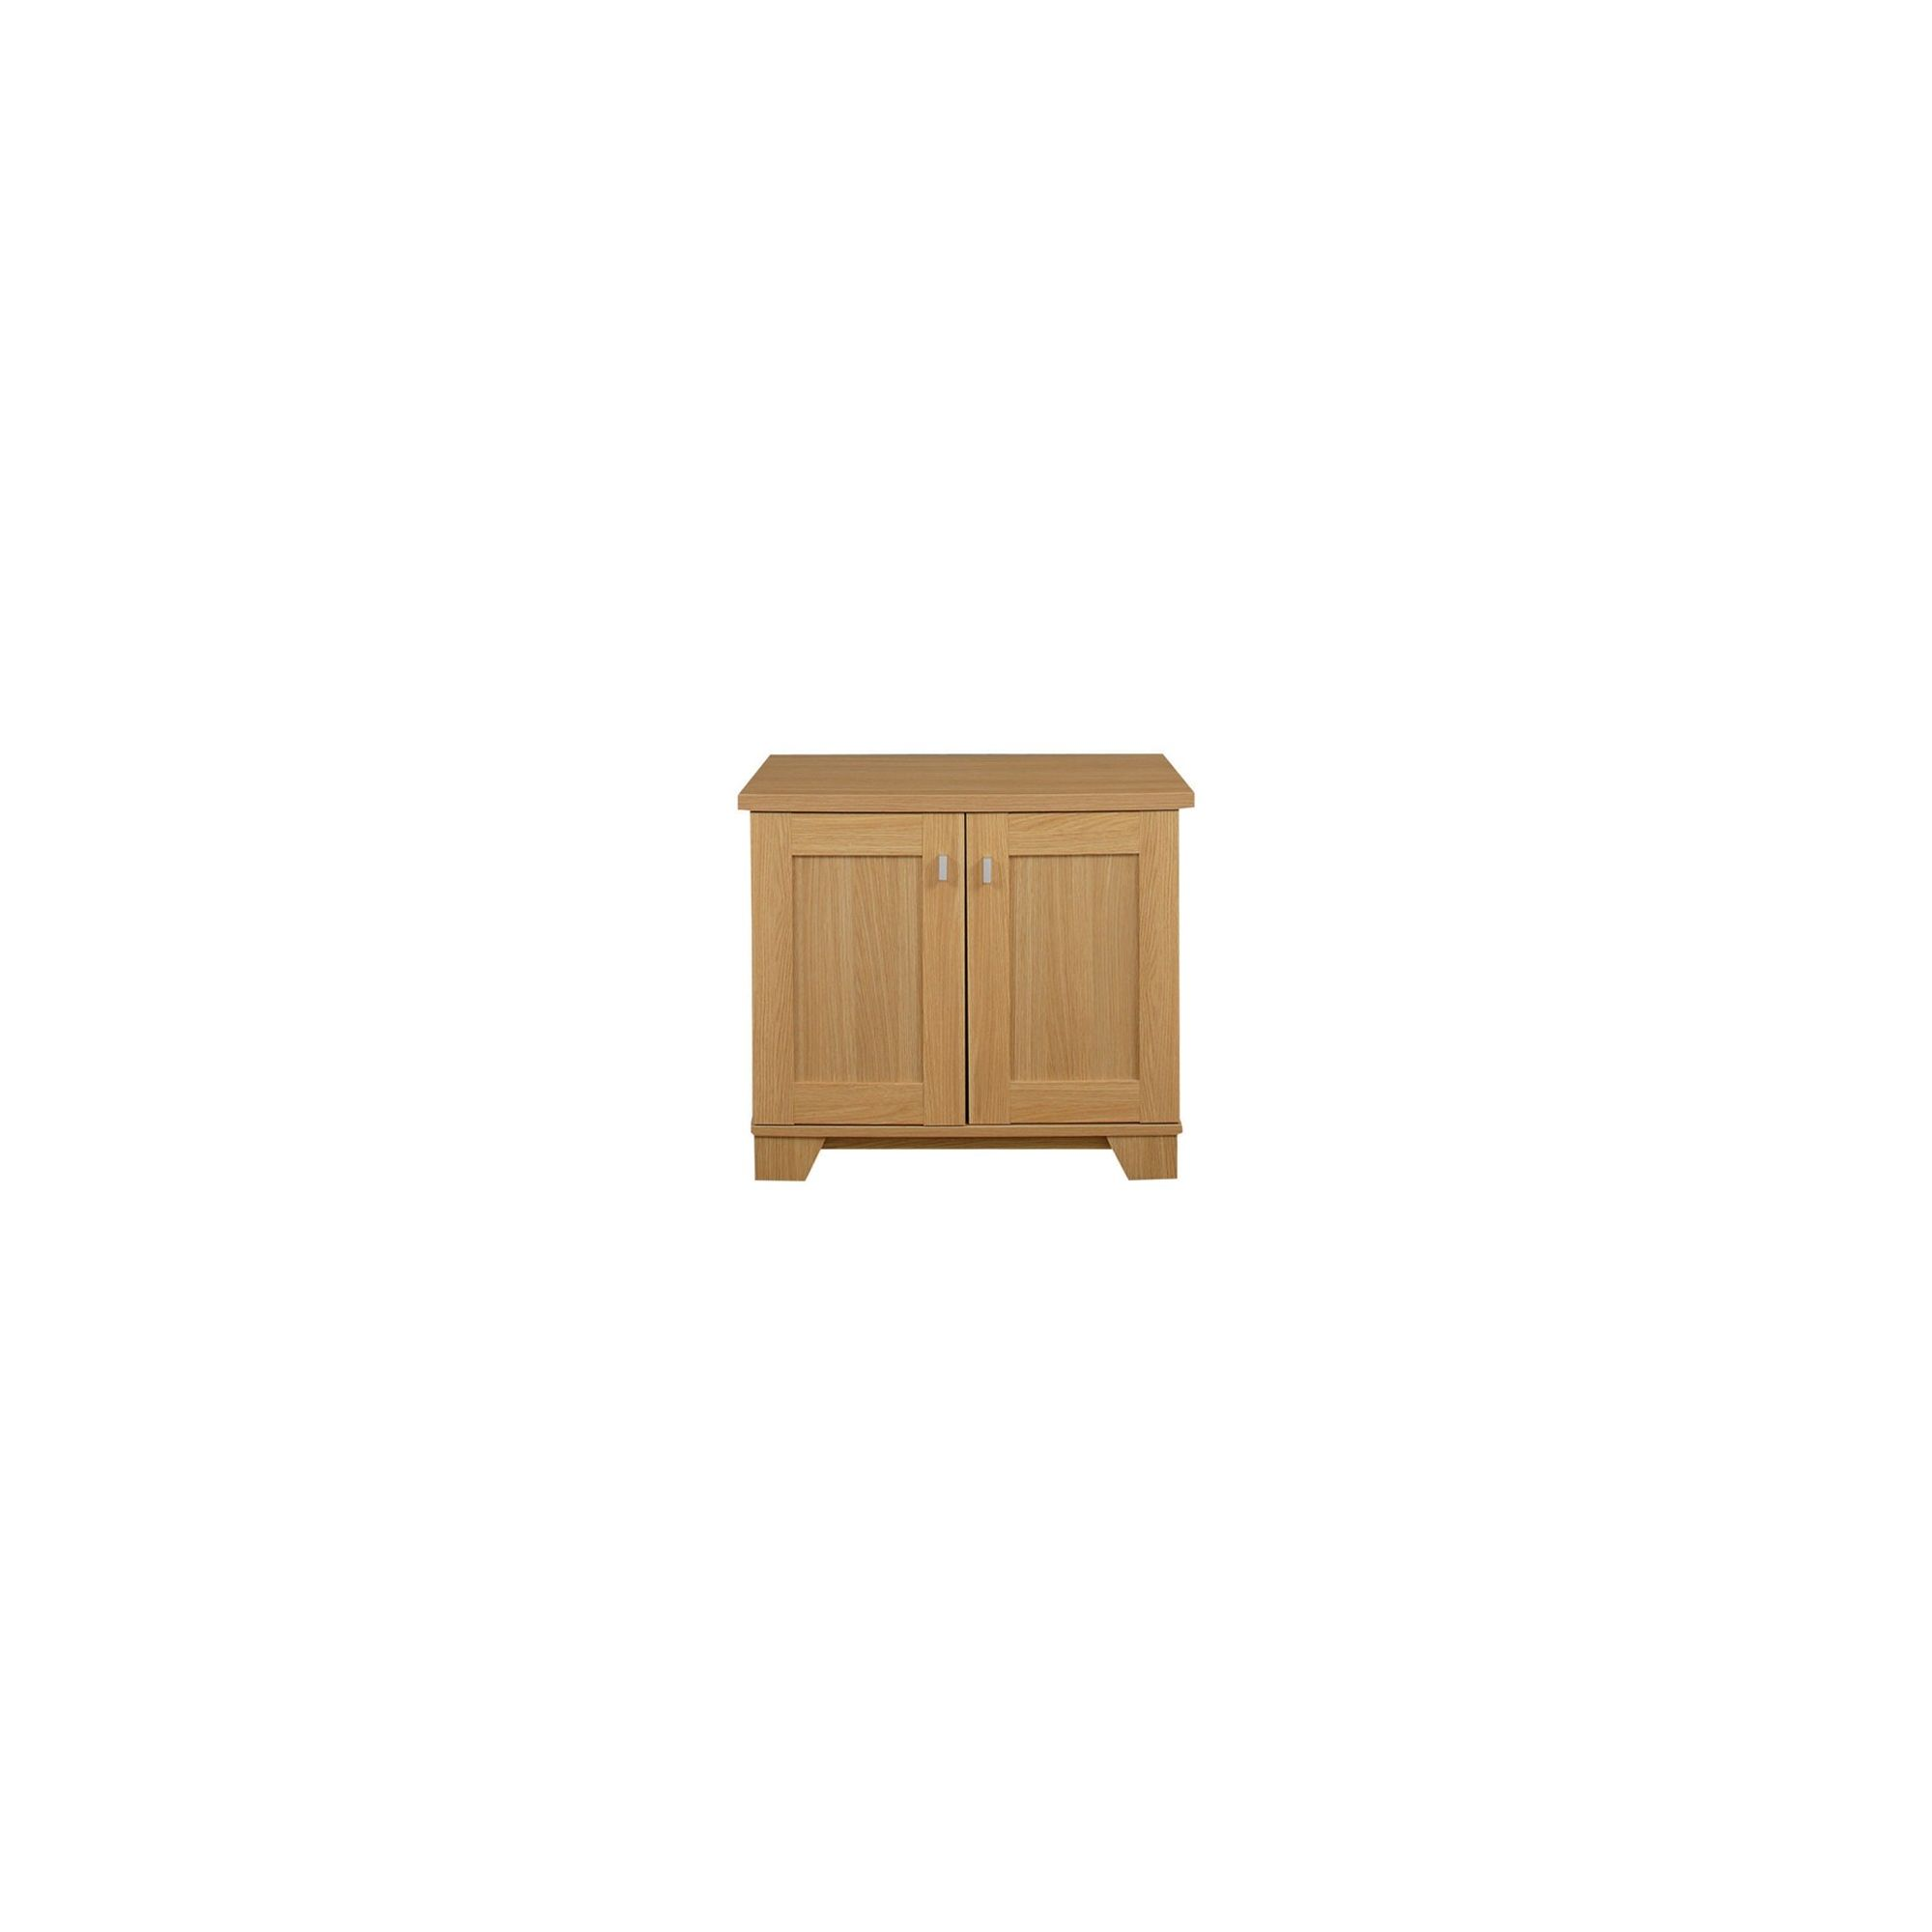 Caxton Sherwood 2 Door Sideboard Base in Natural Oak at Tescos Direct